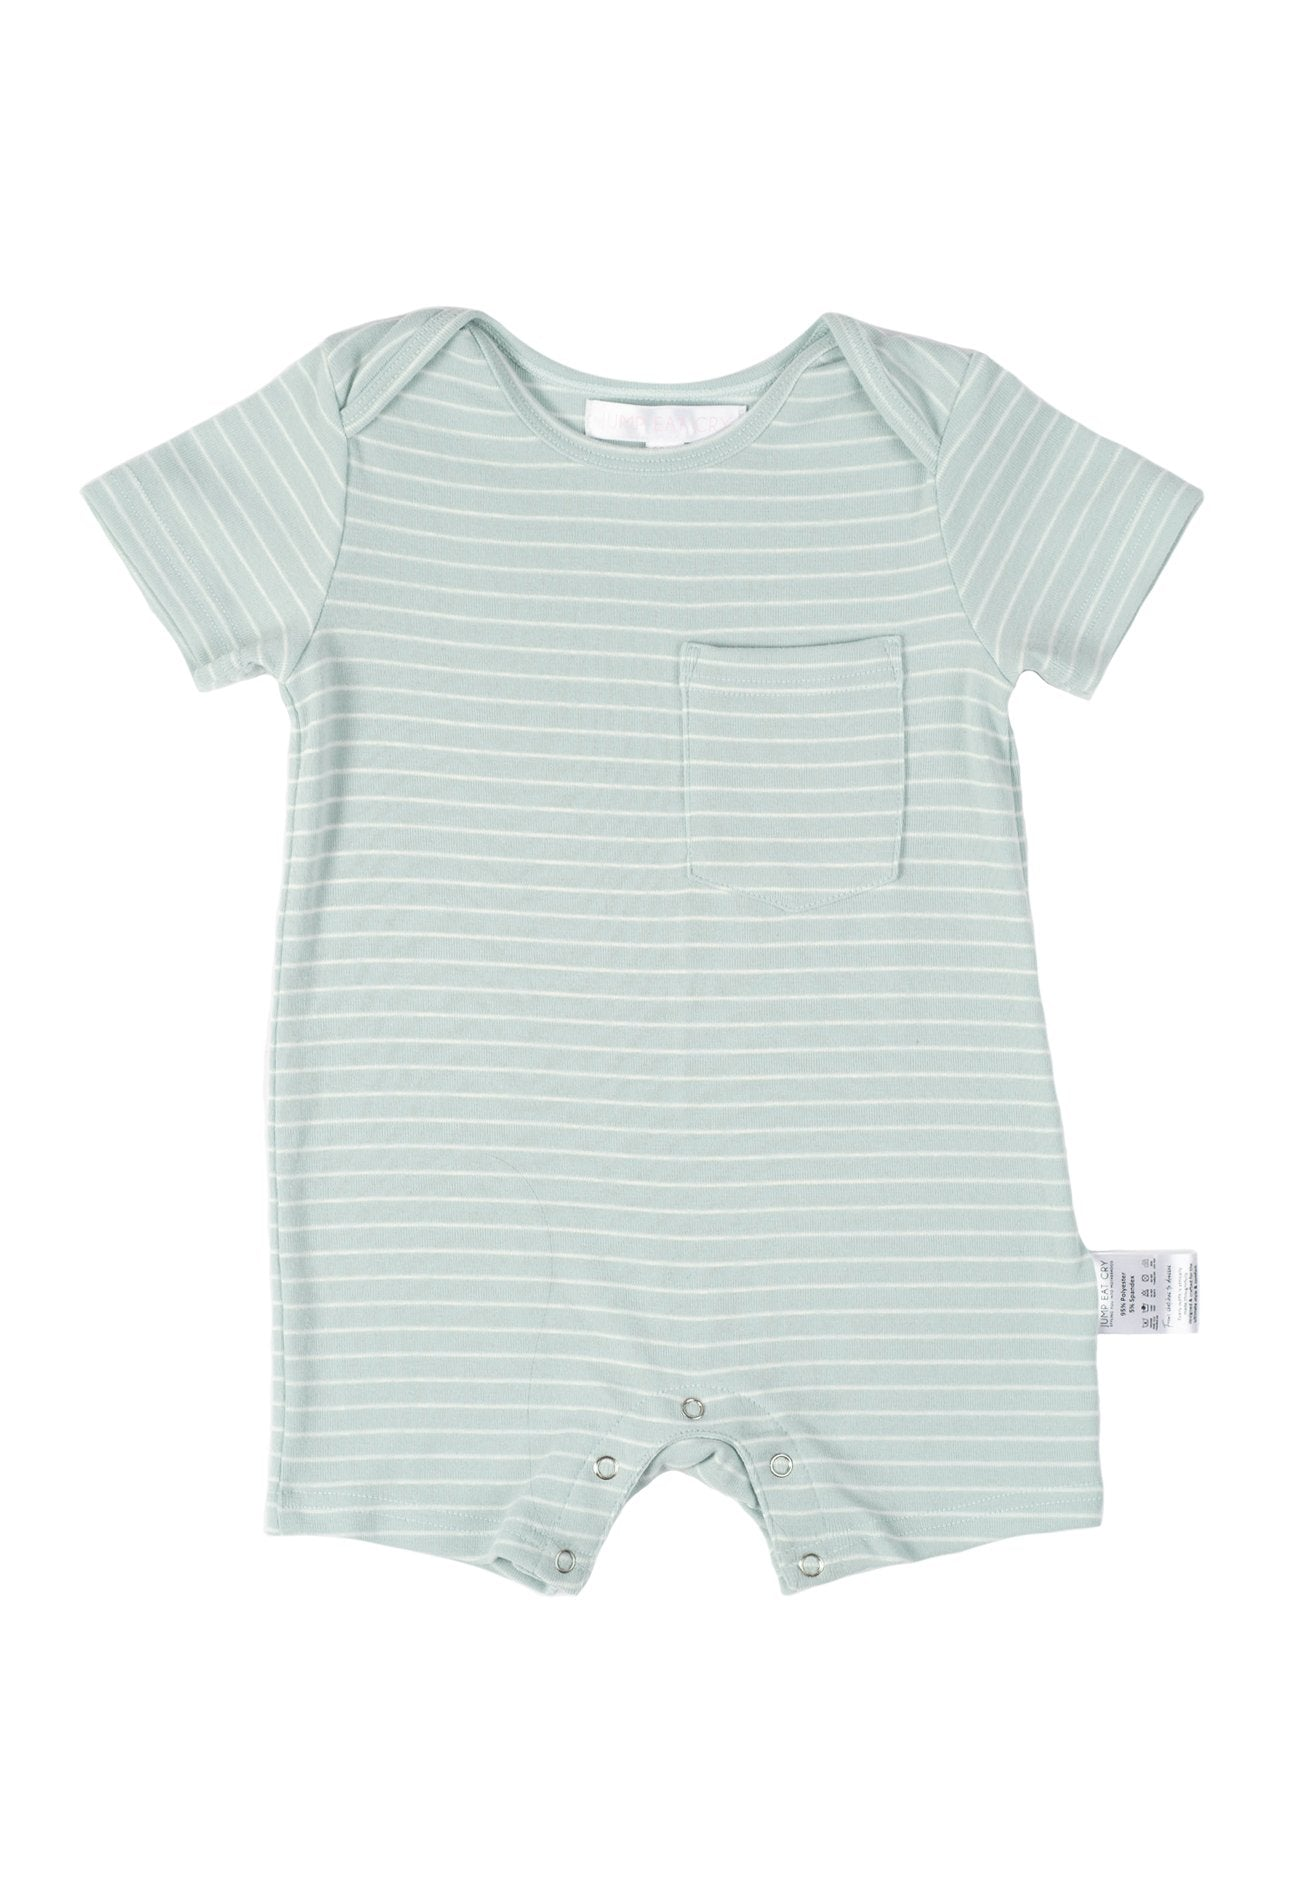 Taffy Striped Boy Romper in Light Turquoise  by Jump Eat Cry - Maternity and nursing wear